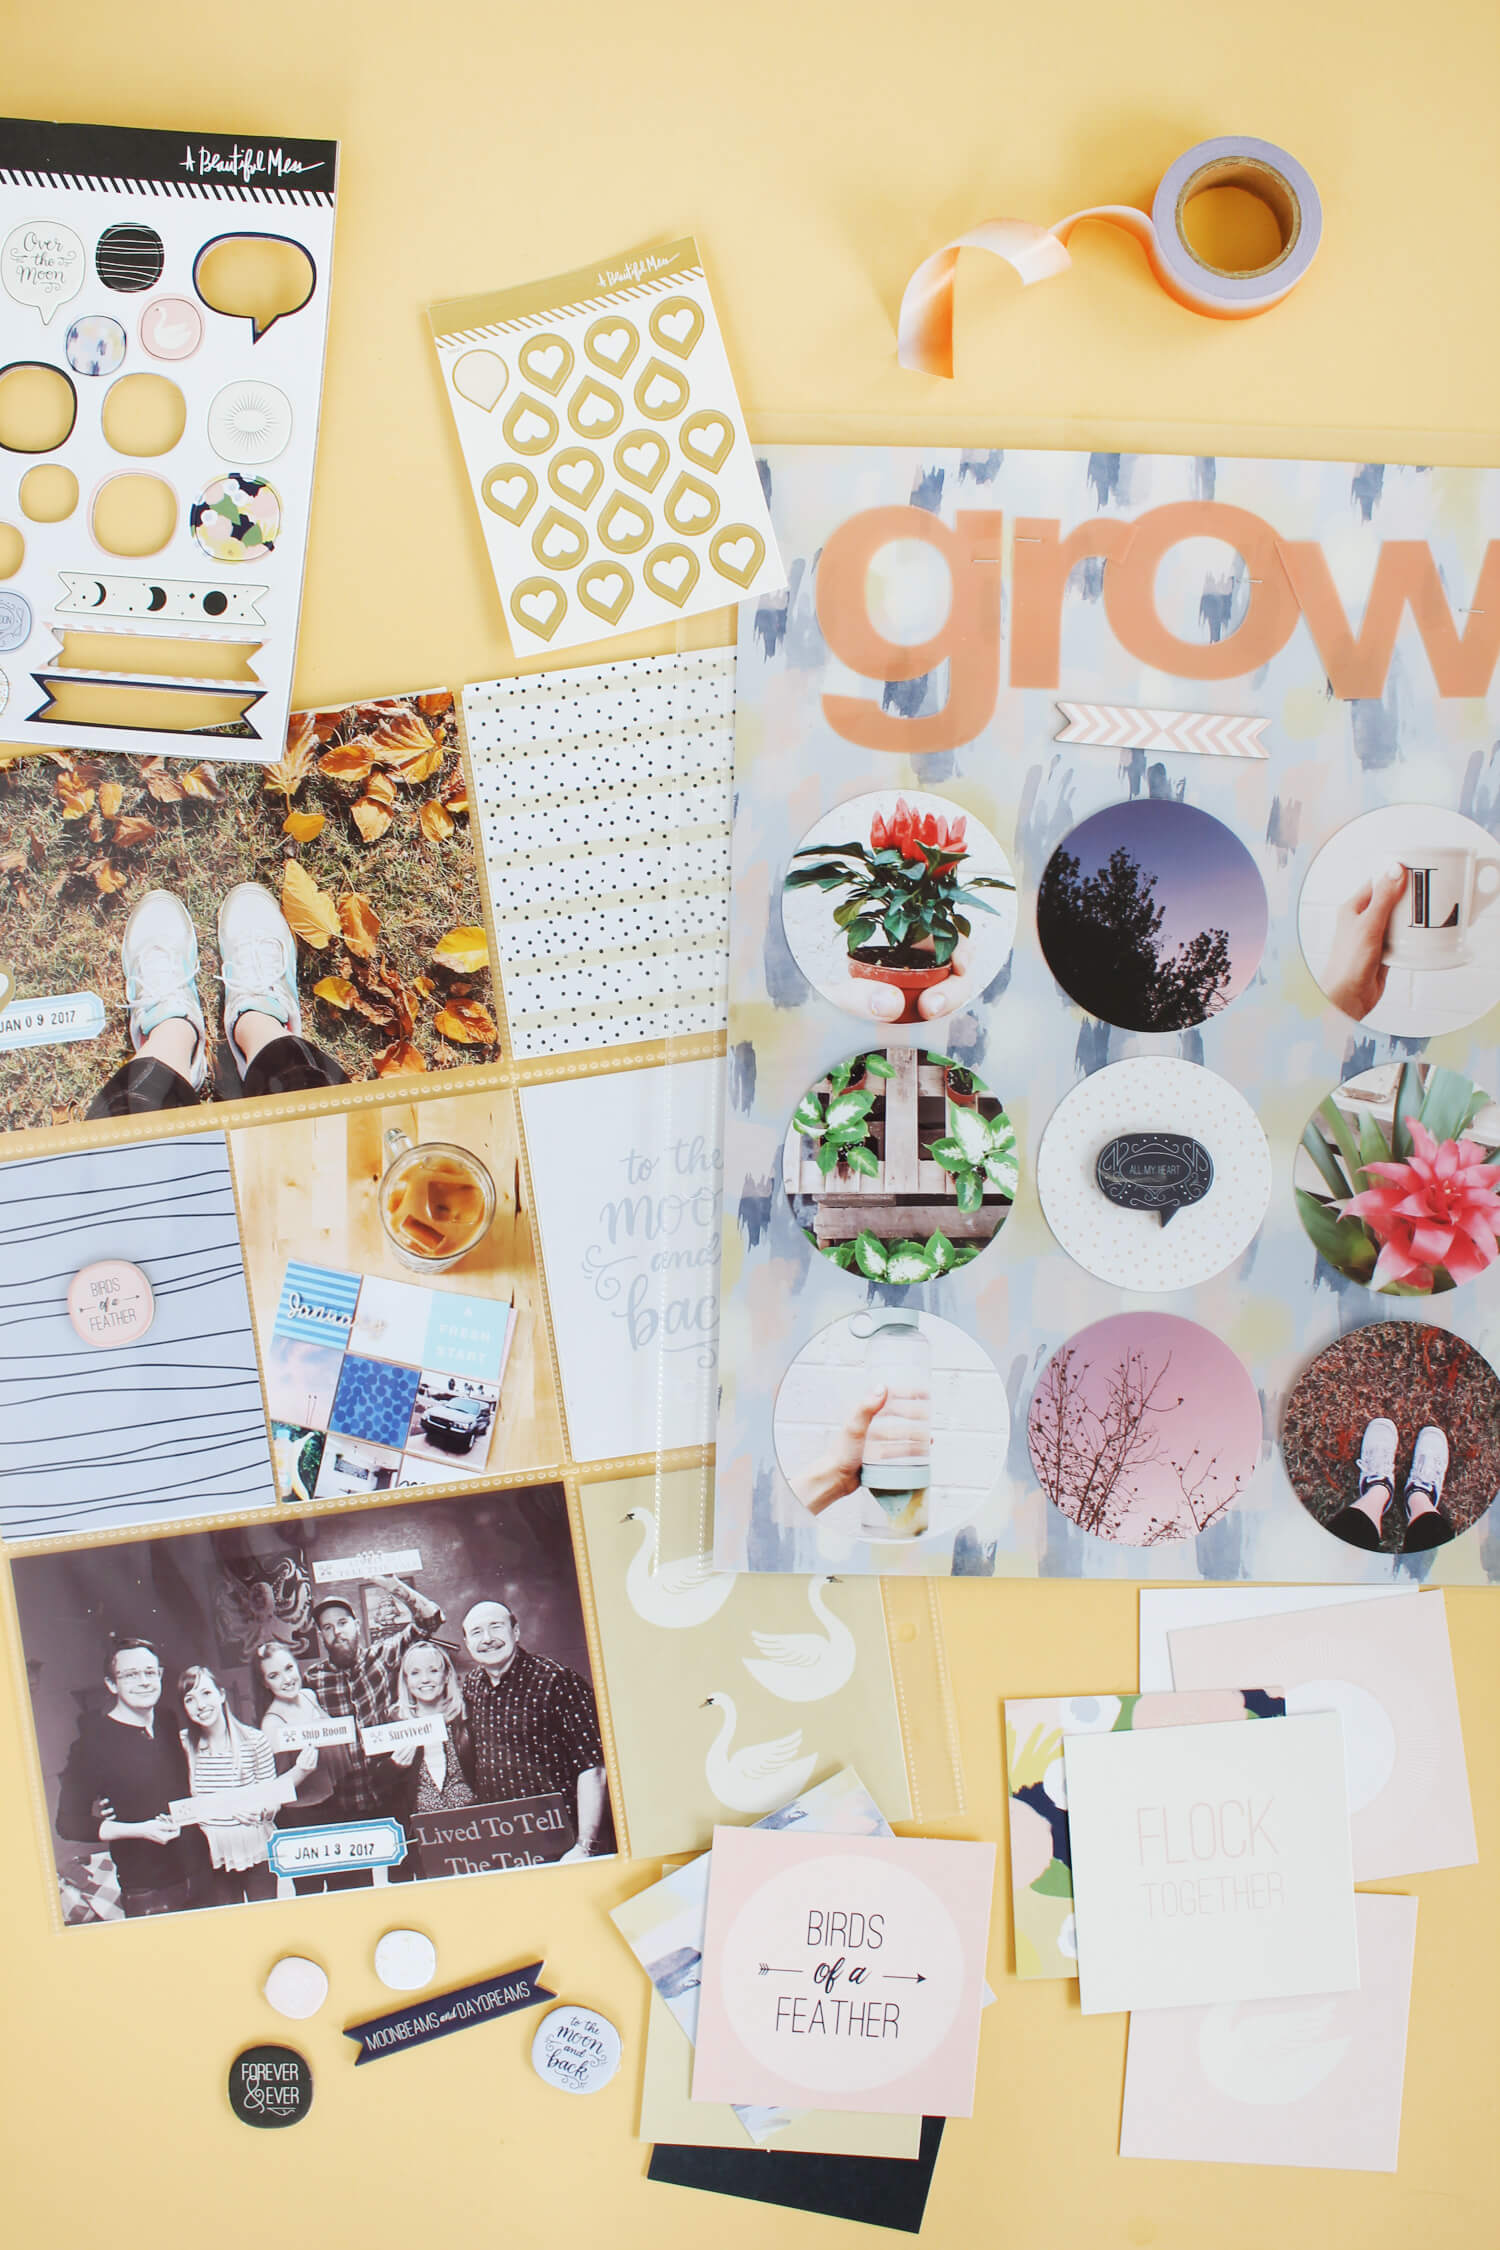 January Messy Box from A Beautiful Mess Get yours at www.ABeautifulMess.com